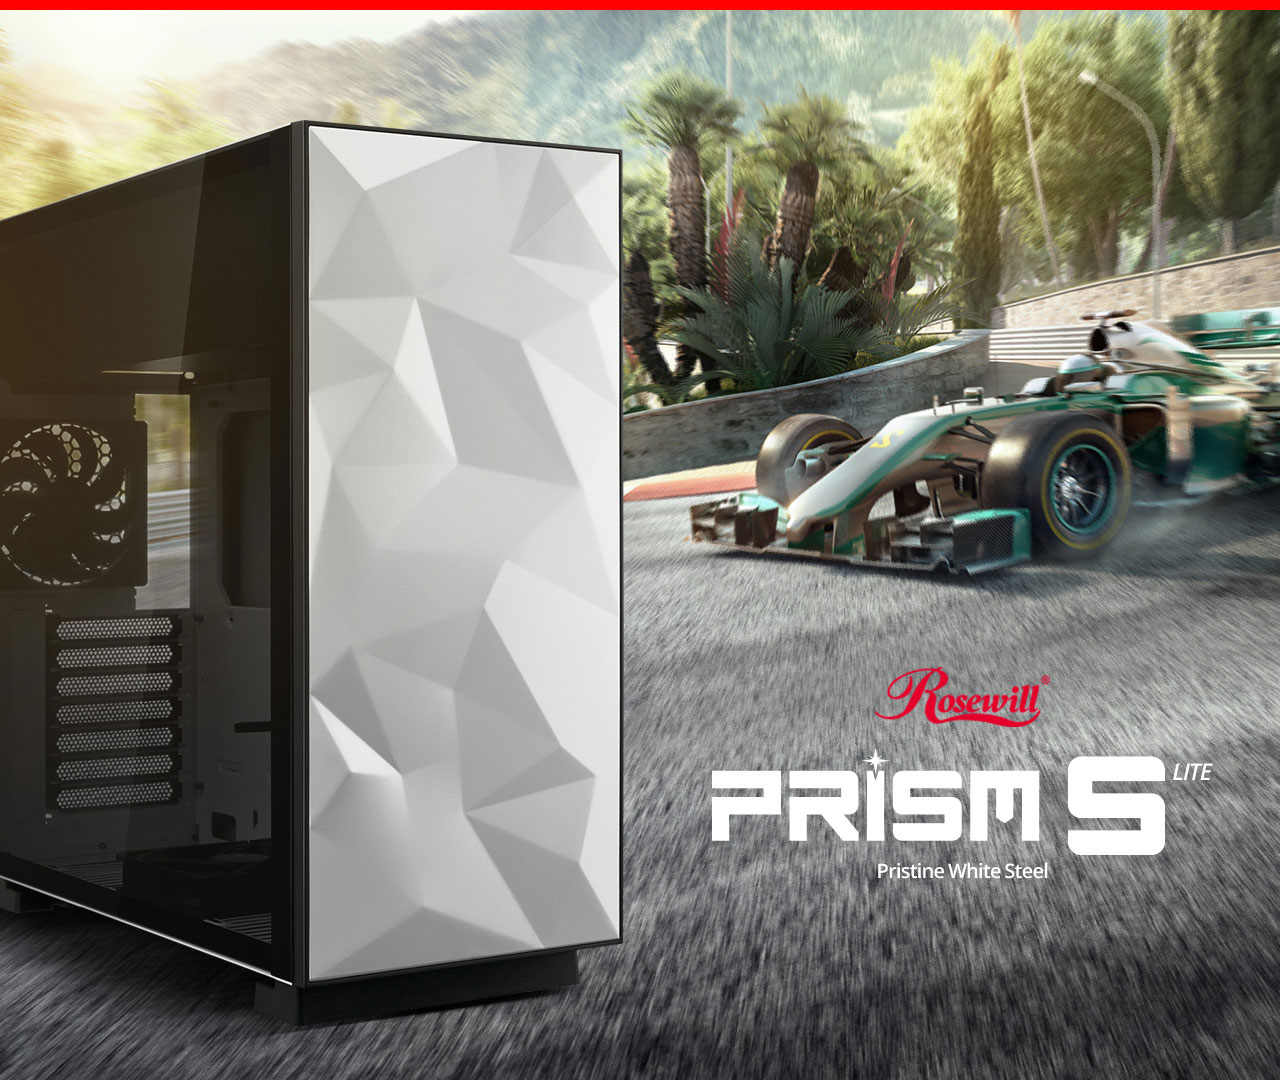 Rosewill PRISM S-LITE case angled to the right next to text that reads: Rosewill PRISM S LITE - Pristine White Steel; and a green dragster drifting down to the left through a palm-tree surrounded race track